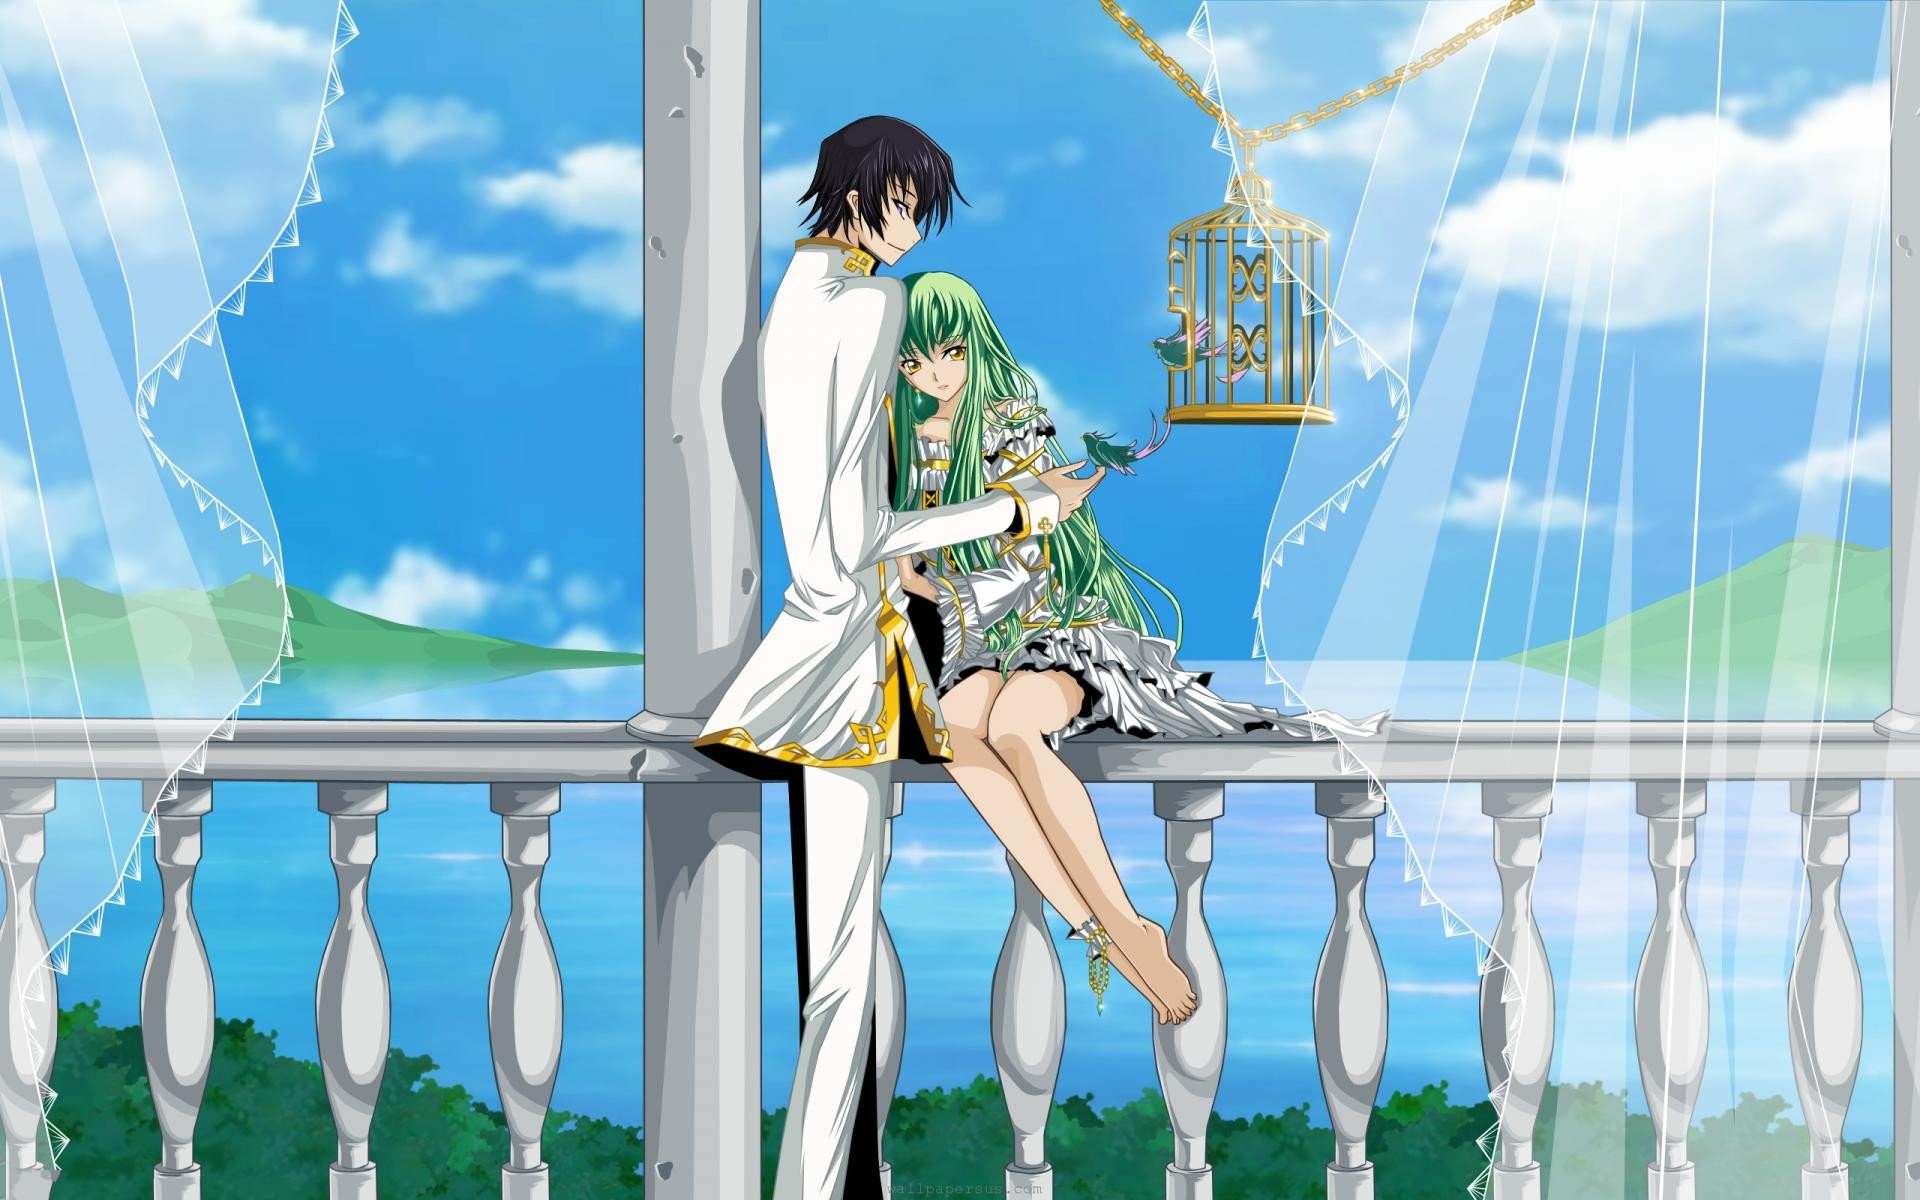 1920x1200 Wallpapers Love Couple Code Geass Anime Boy Cute Girl Us Com  |  #237702 #love couple | Lelouch vi Britannia-Code Geass | Pinterest | Code  geass, ...